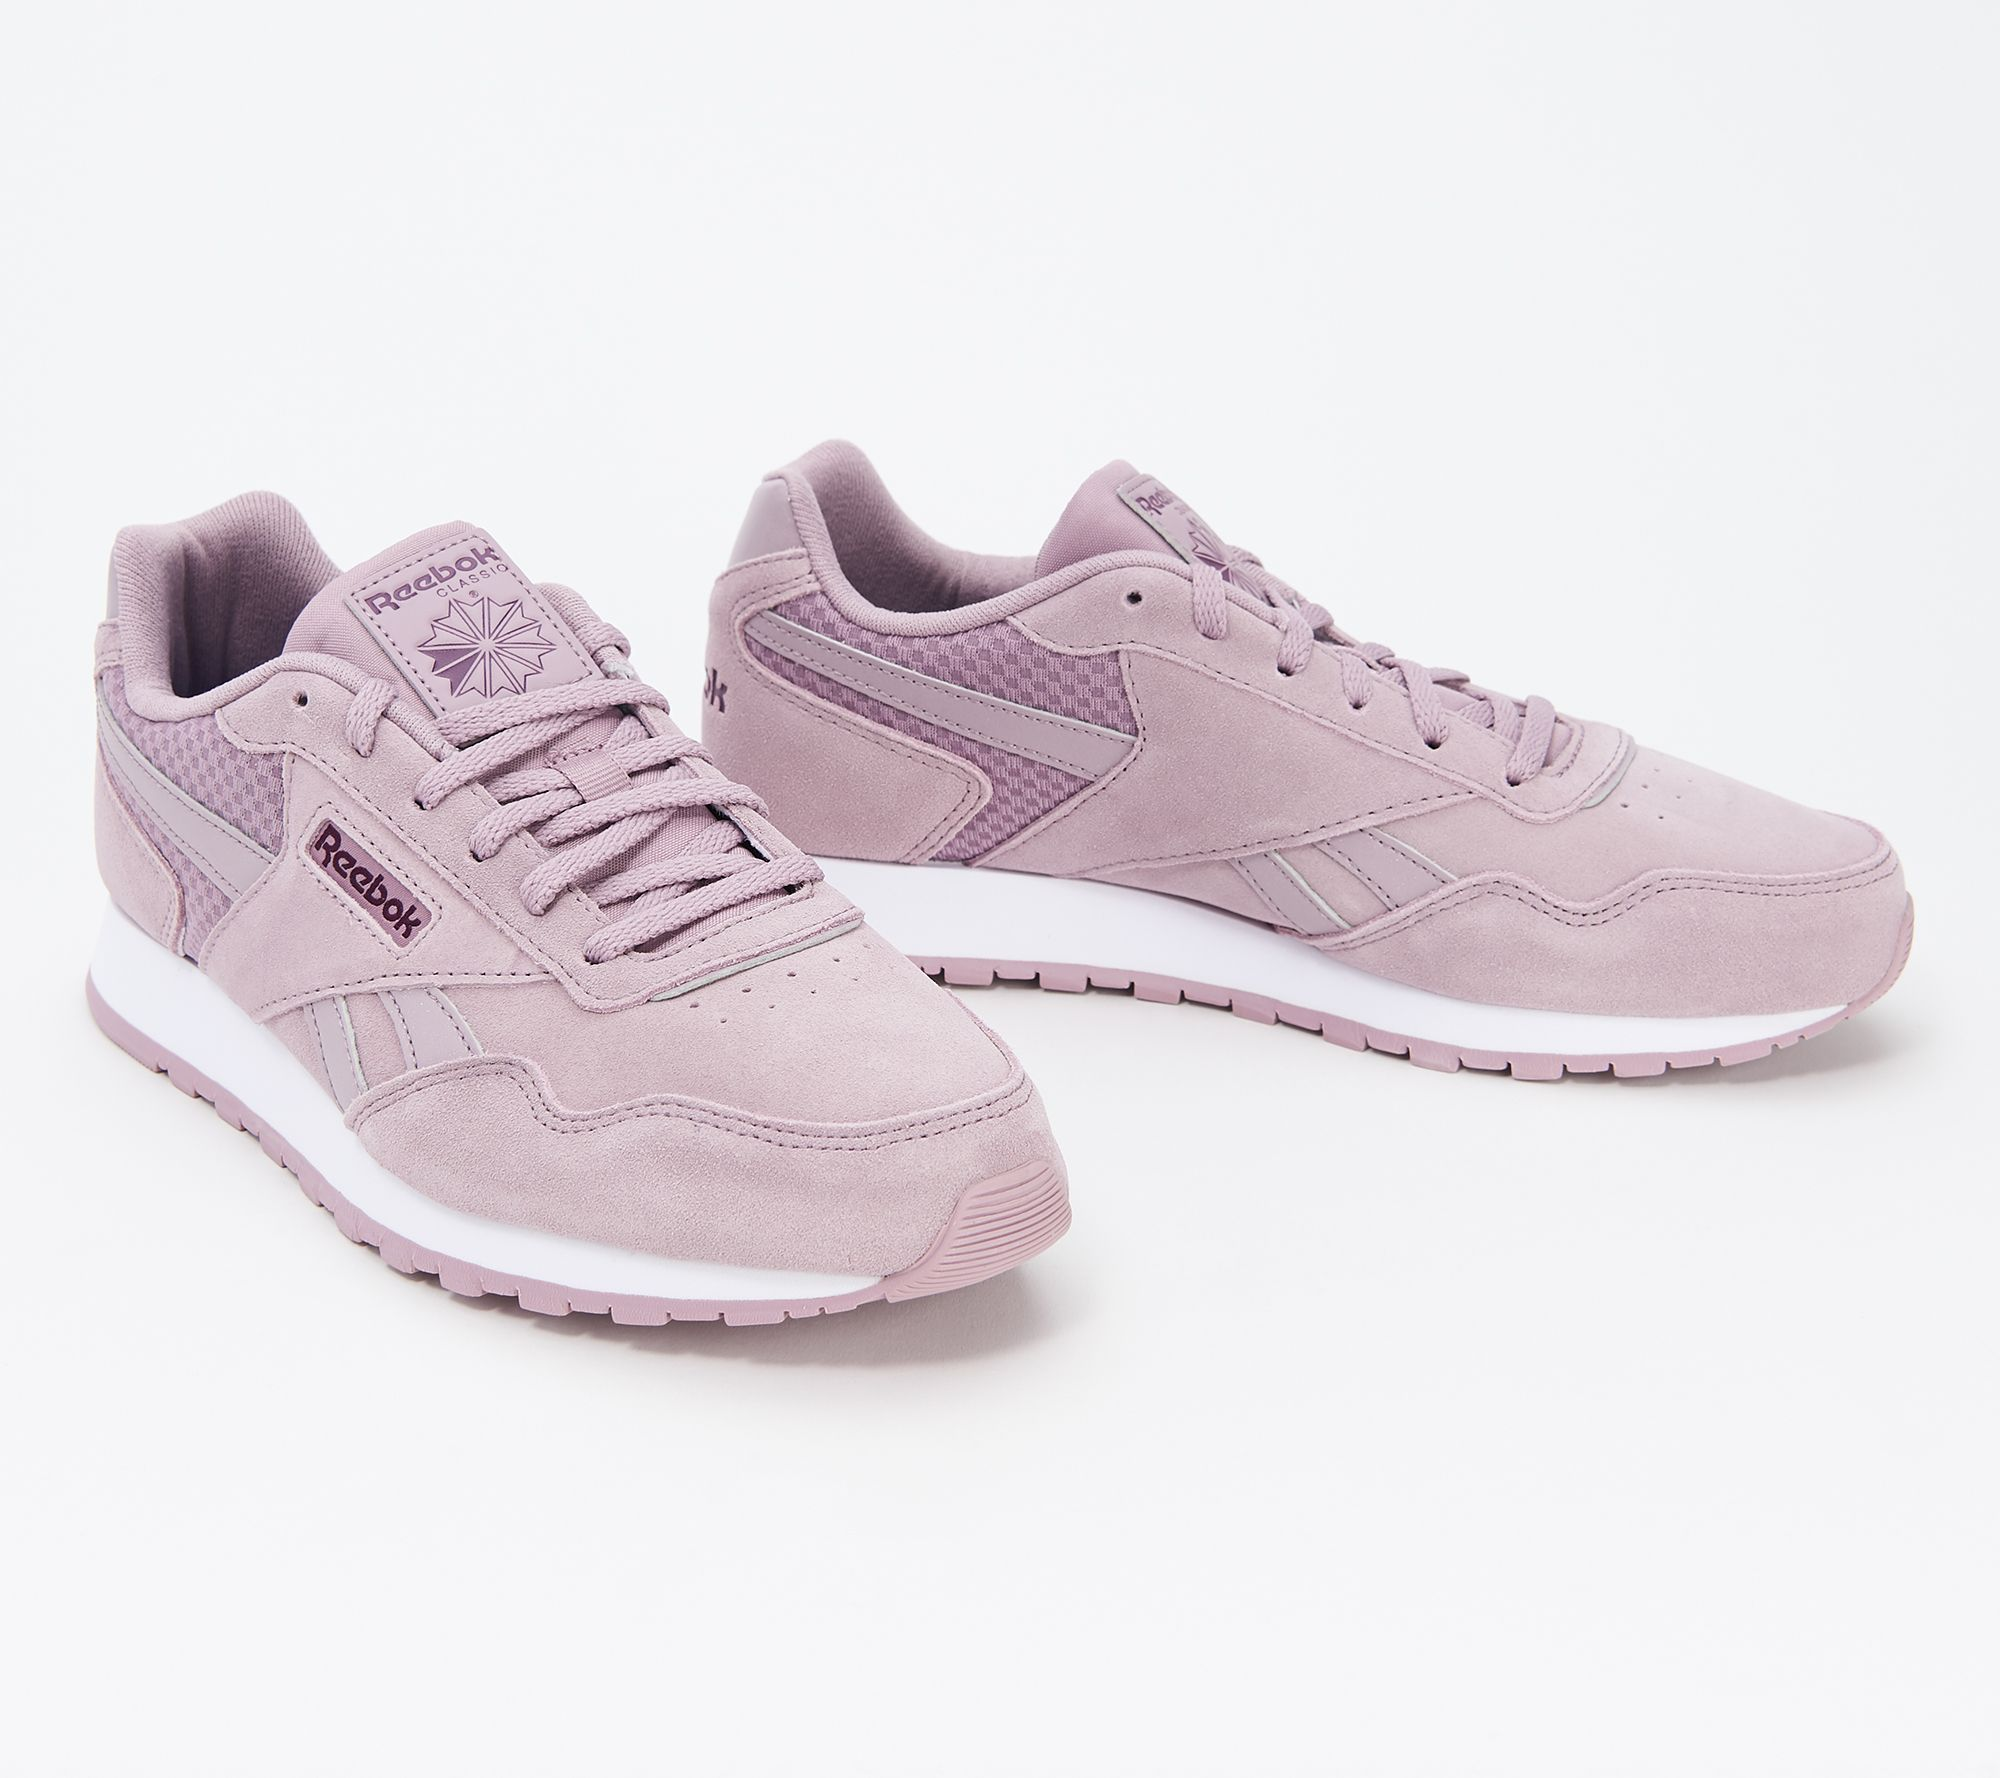 shop for original Clearance sale to buy Reebok Classics Lace-Up Sneaker - Harman Run — QVC.com